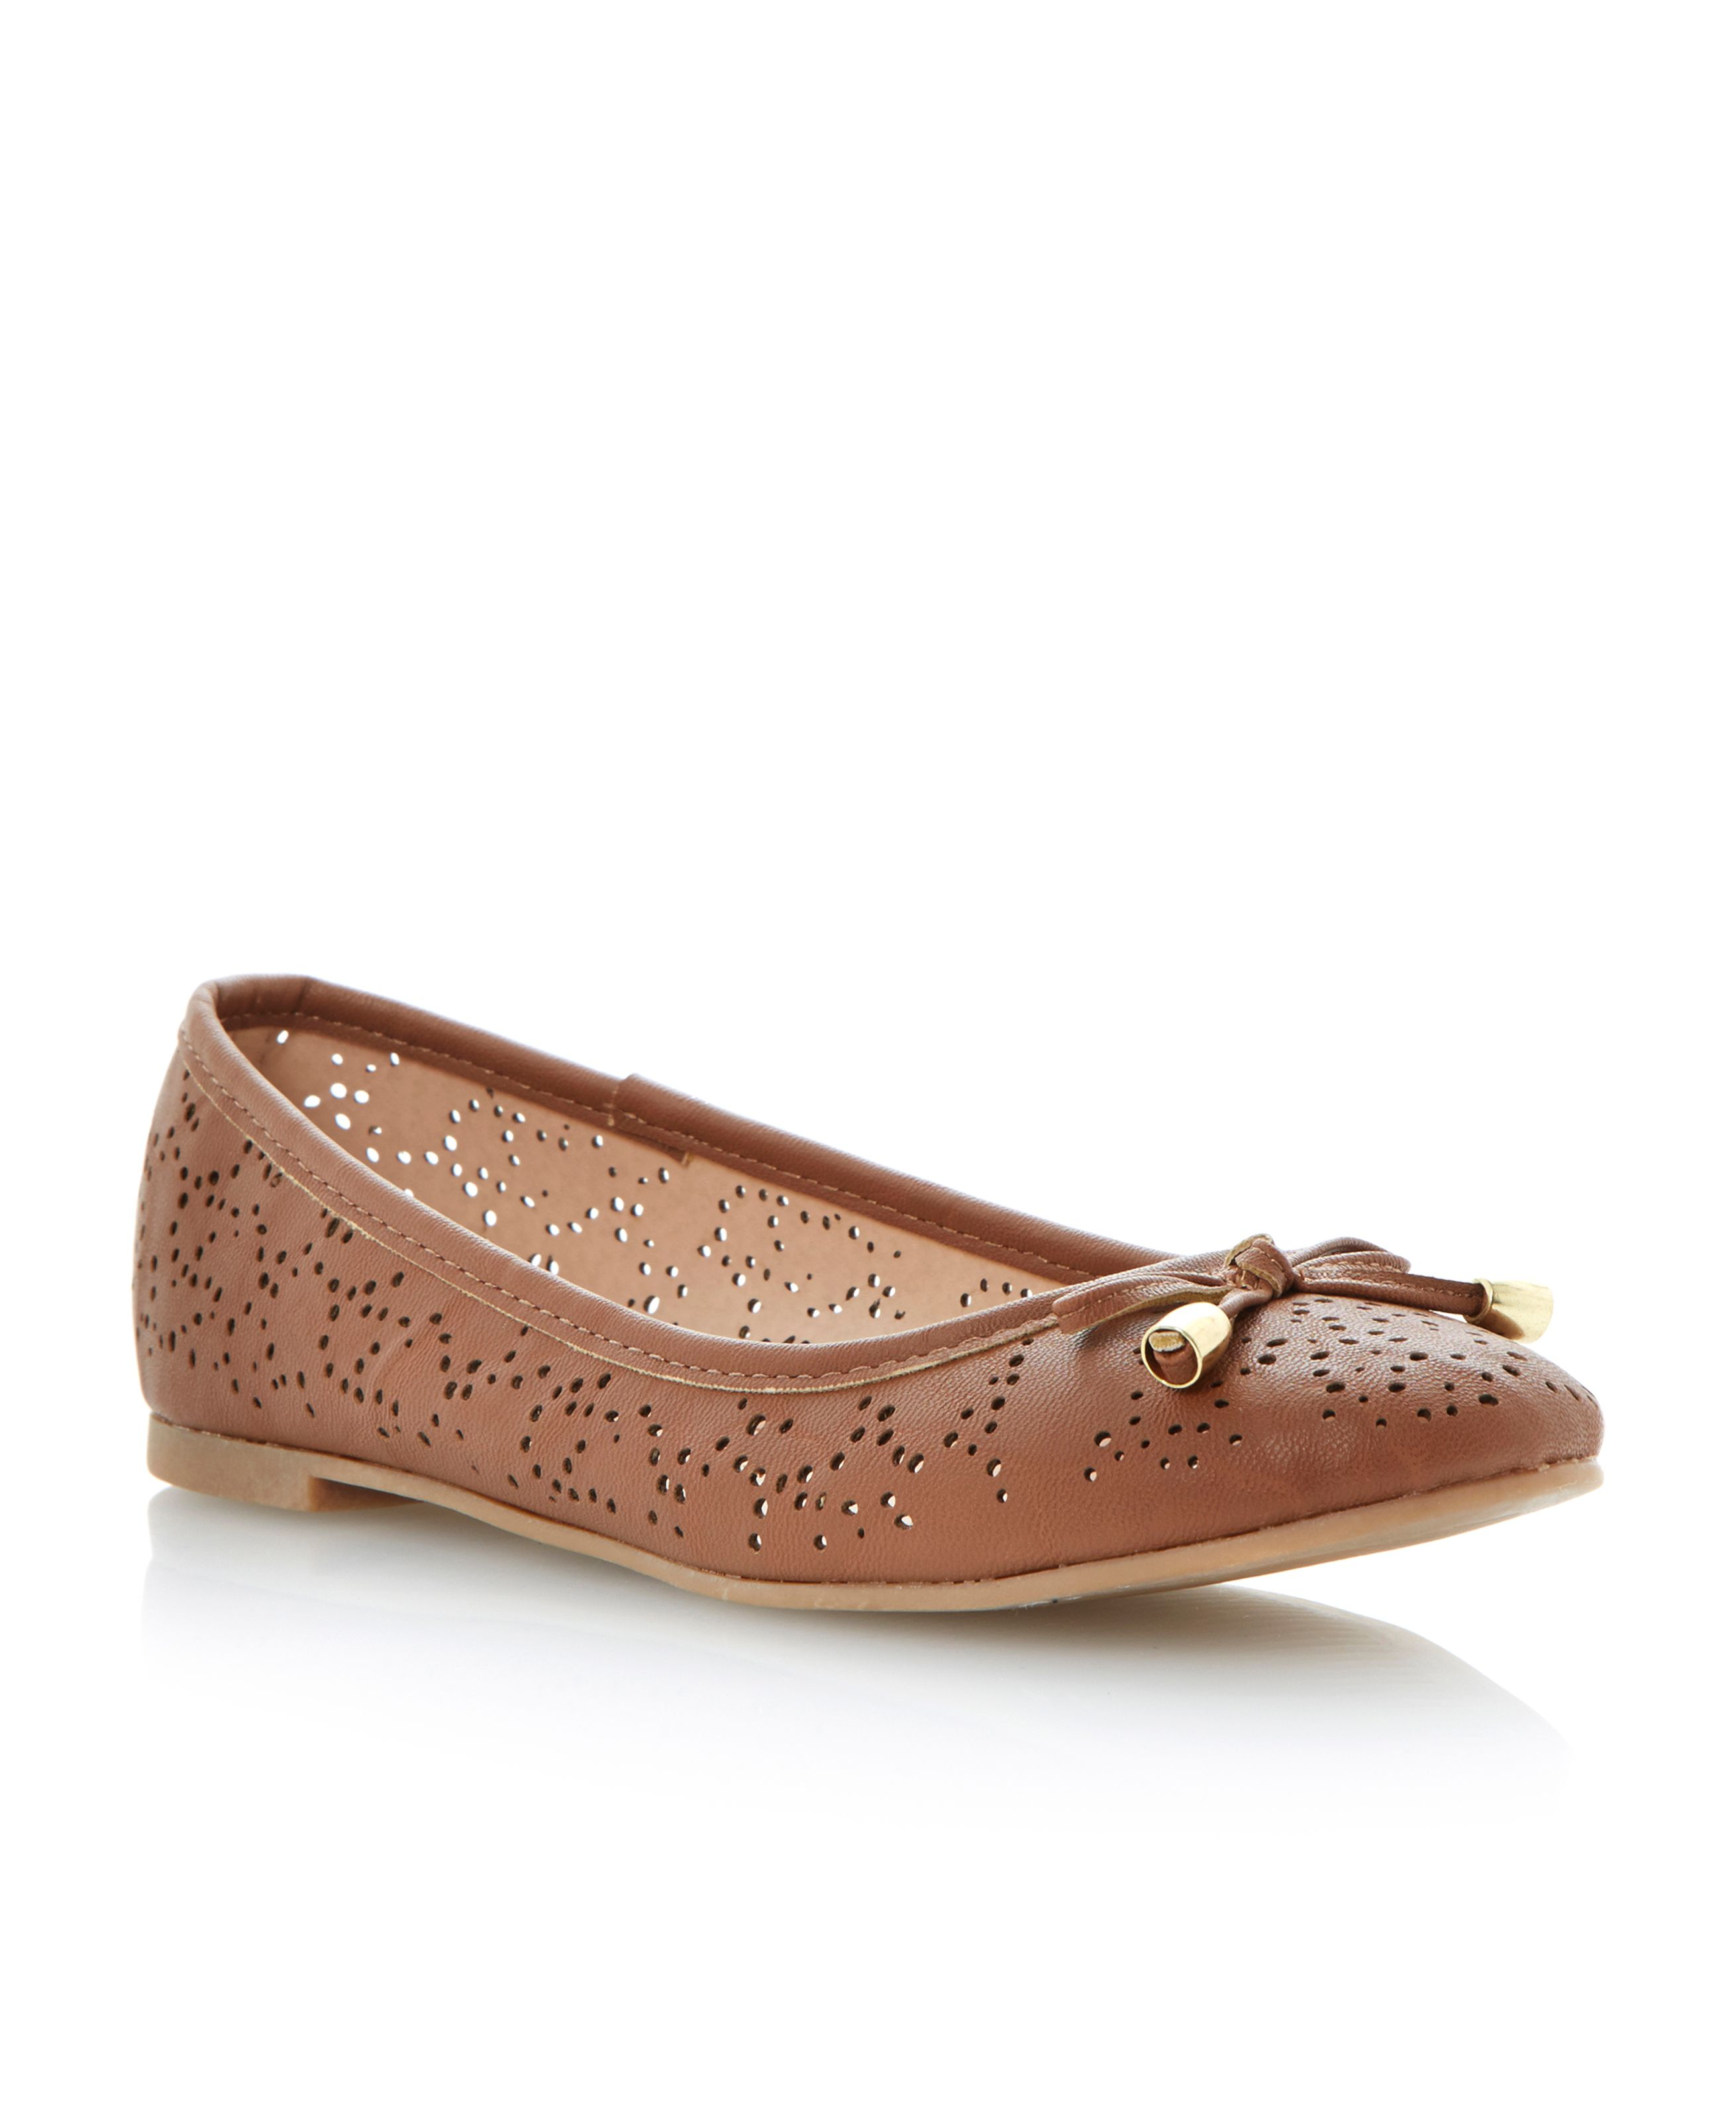 Marigold almond toe flat ballerina shoes